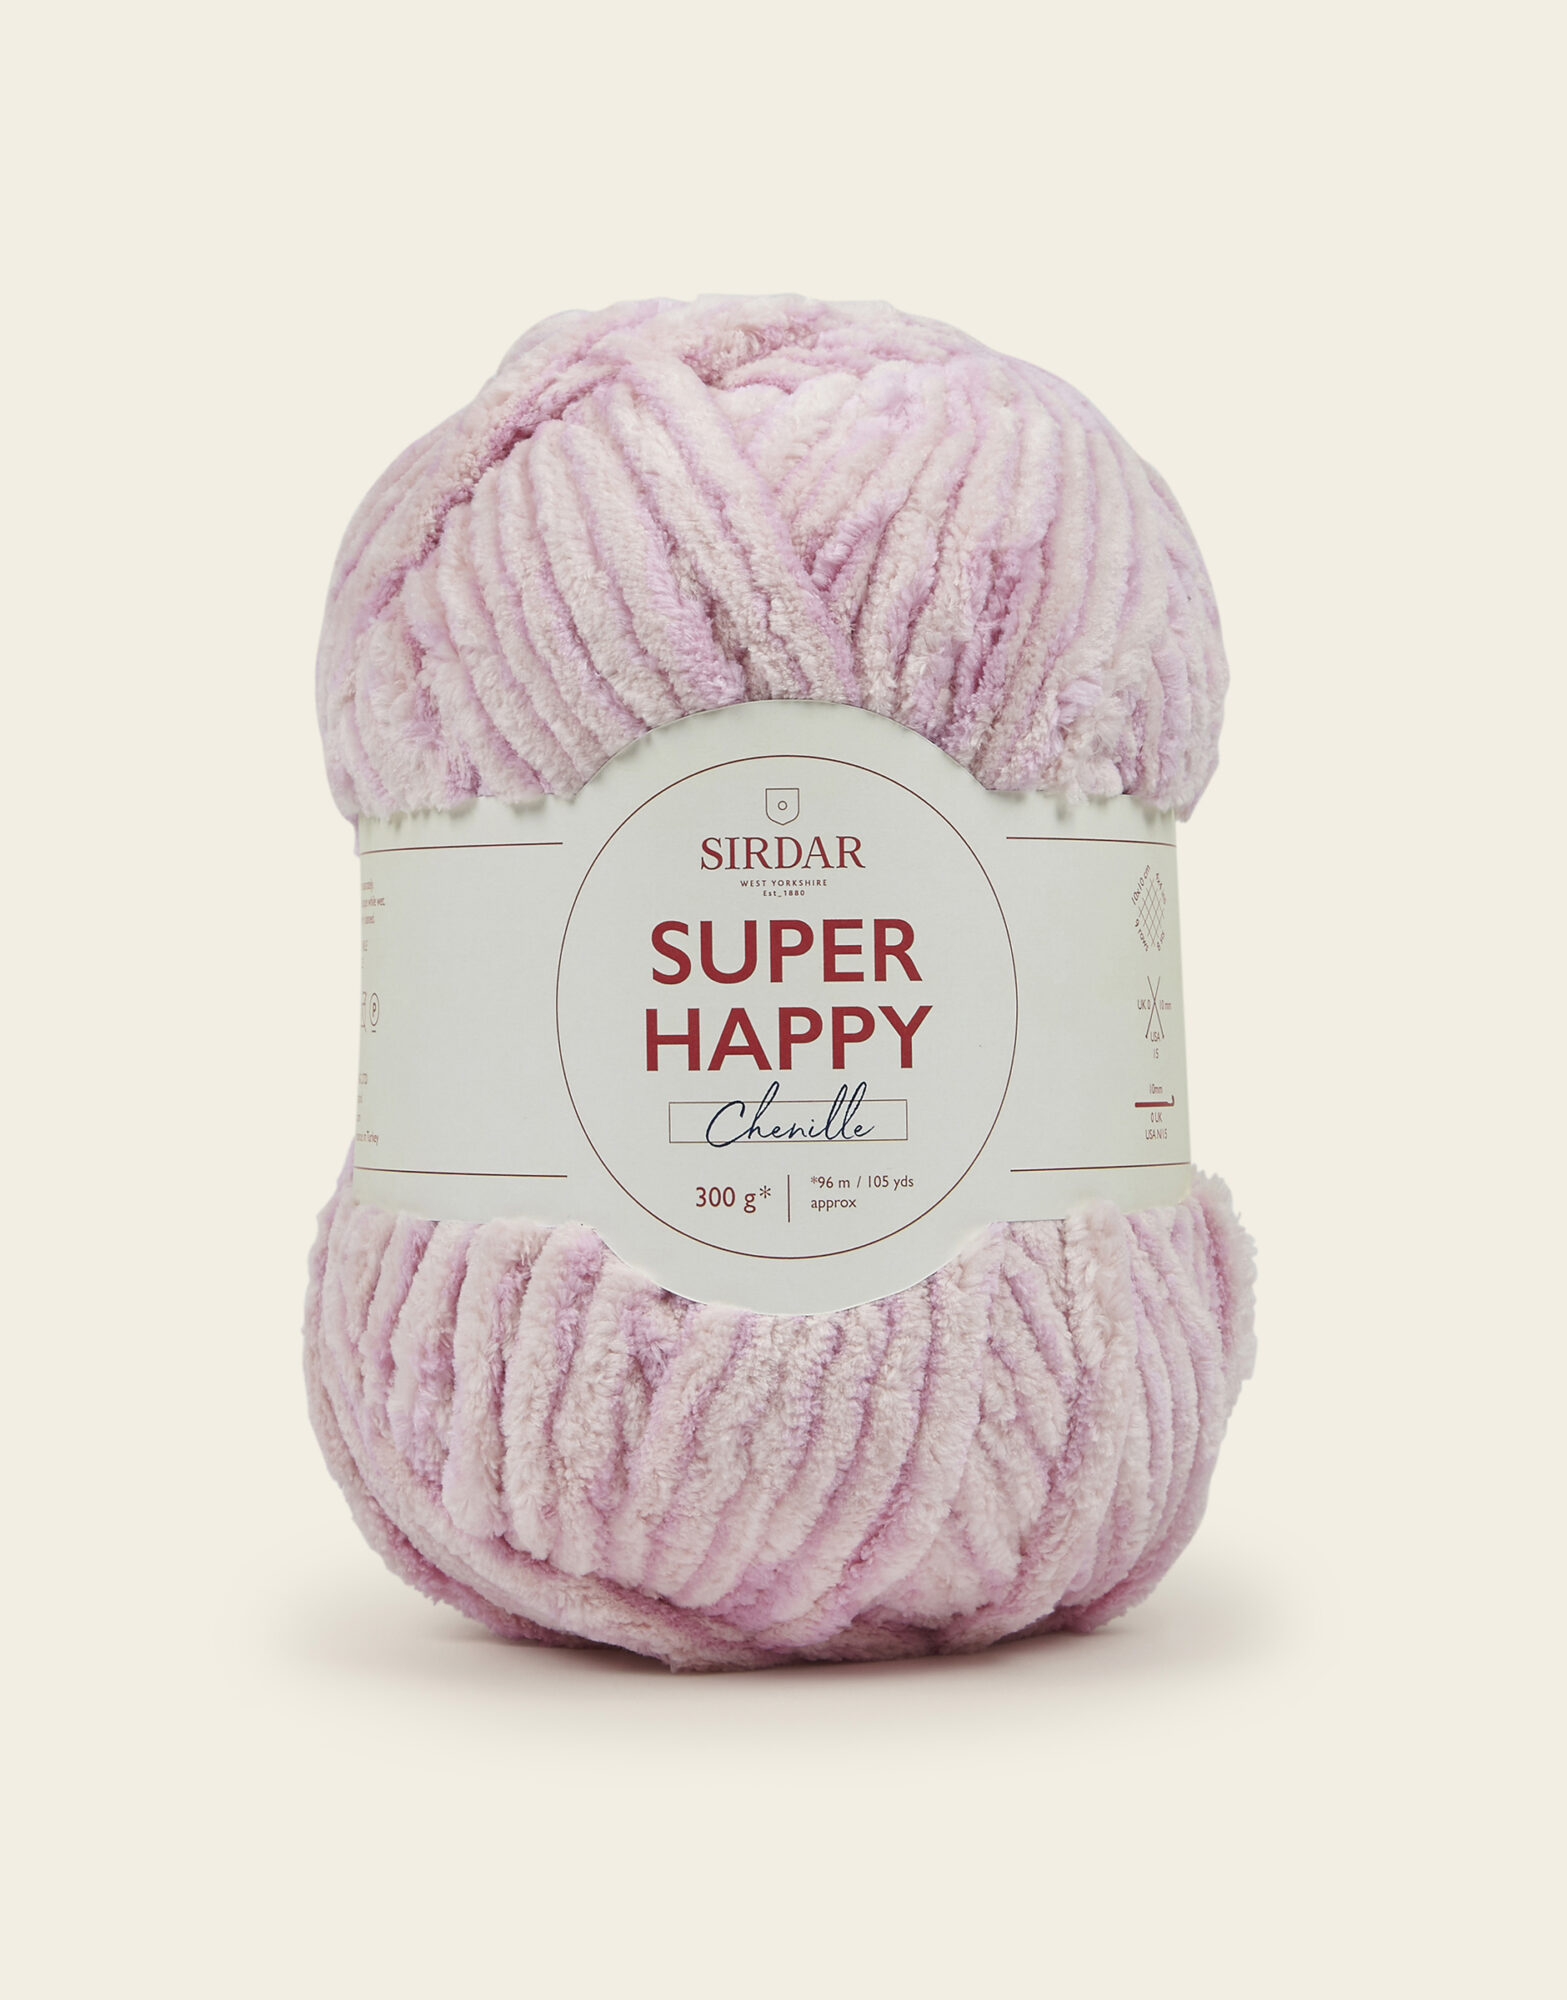 Sirdar Super Happy Chenille product image